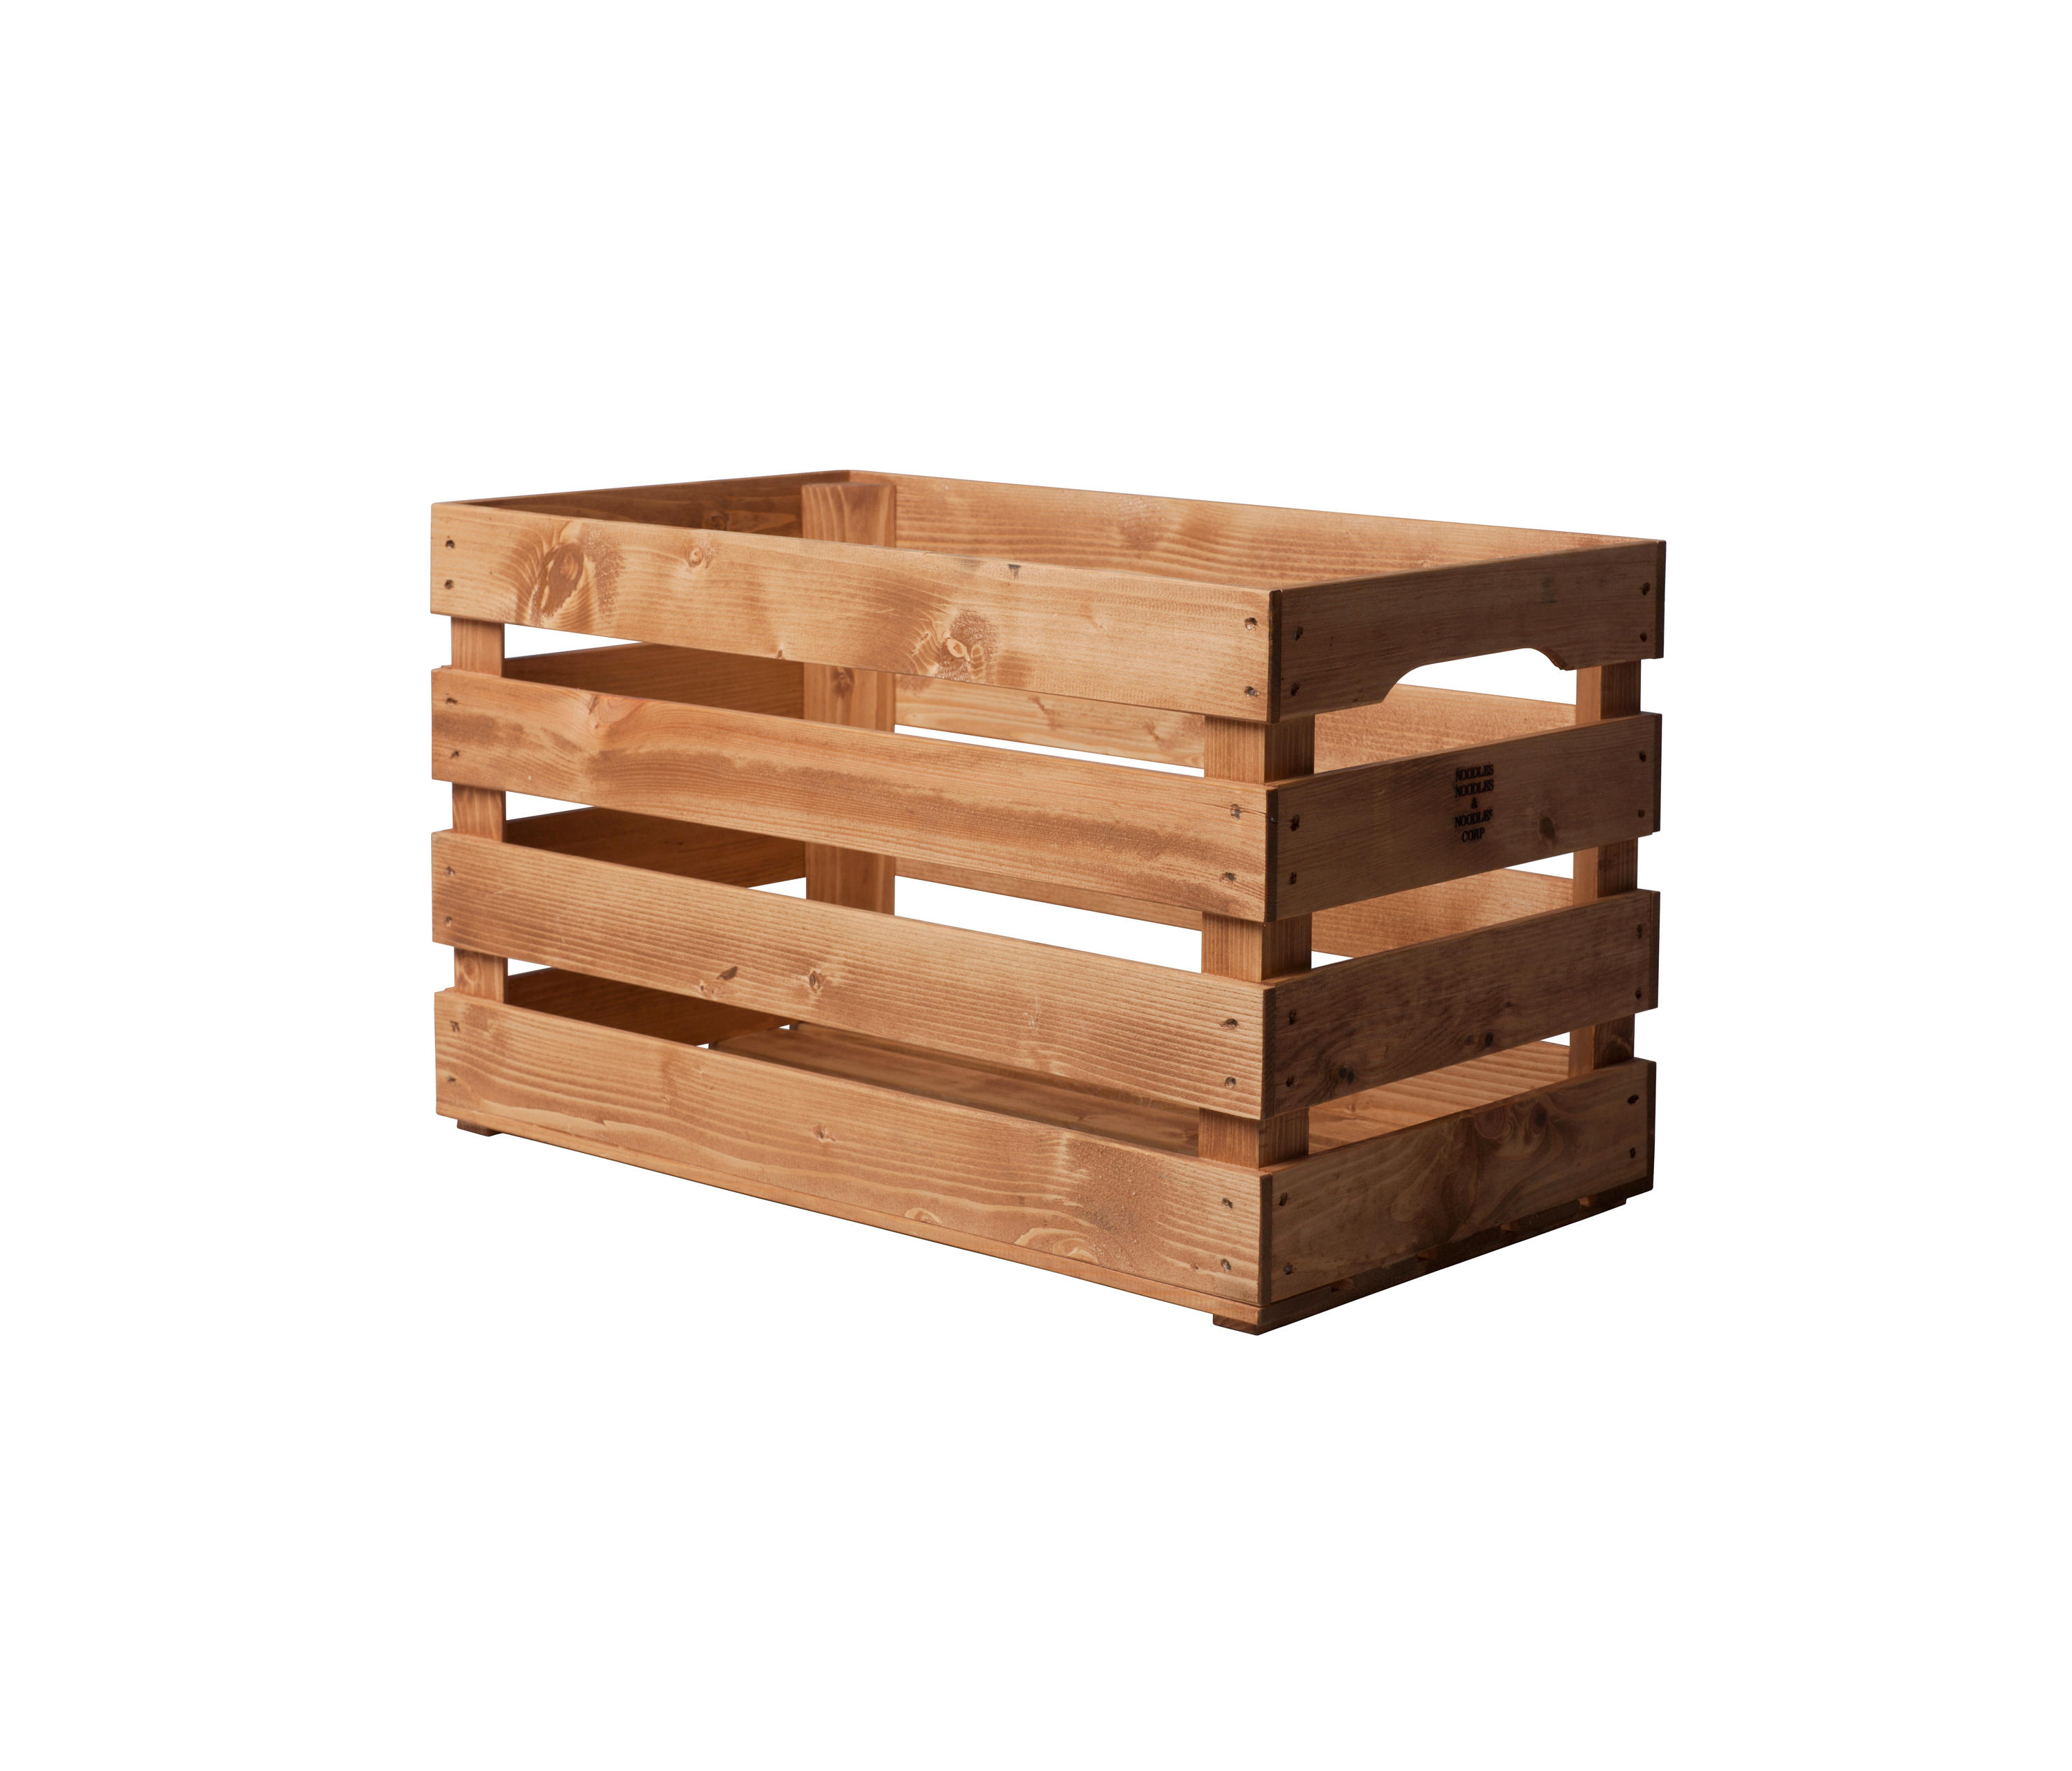 b holzkiste bench crate wood boxes large from storage noodles product wooden en by extra